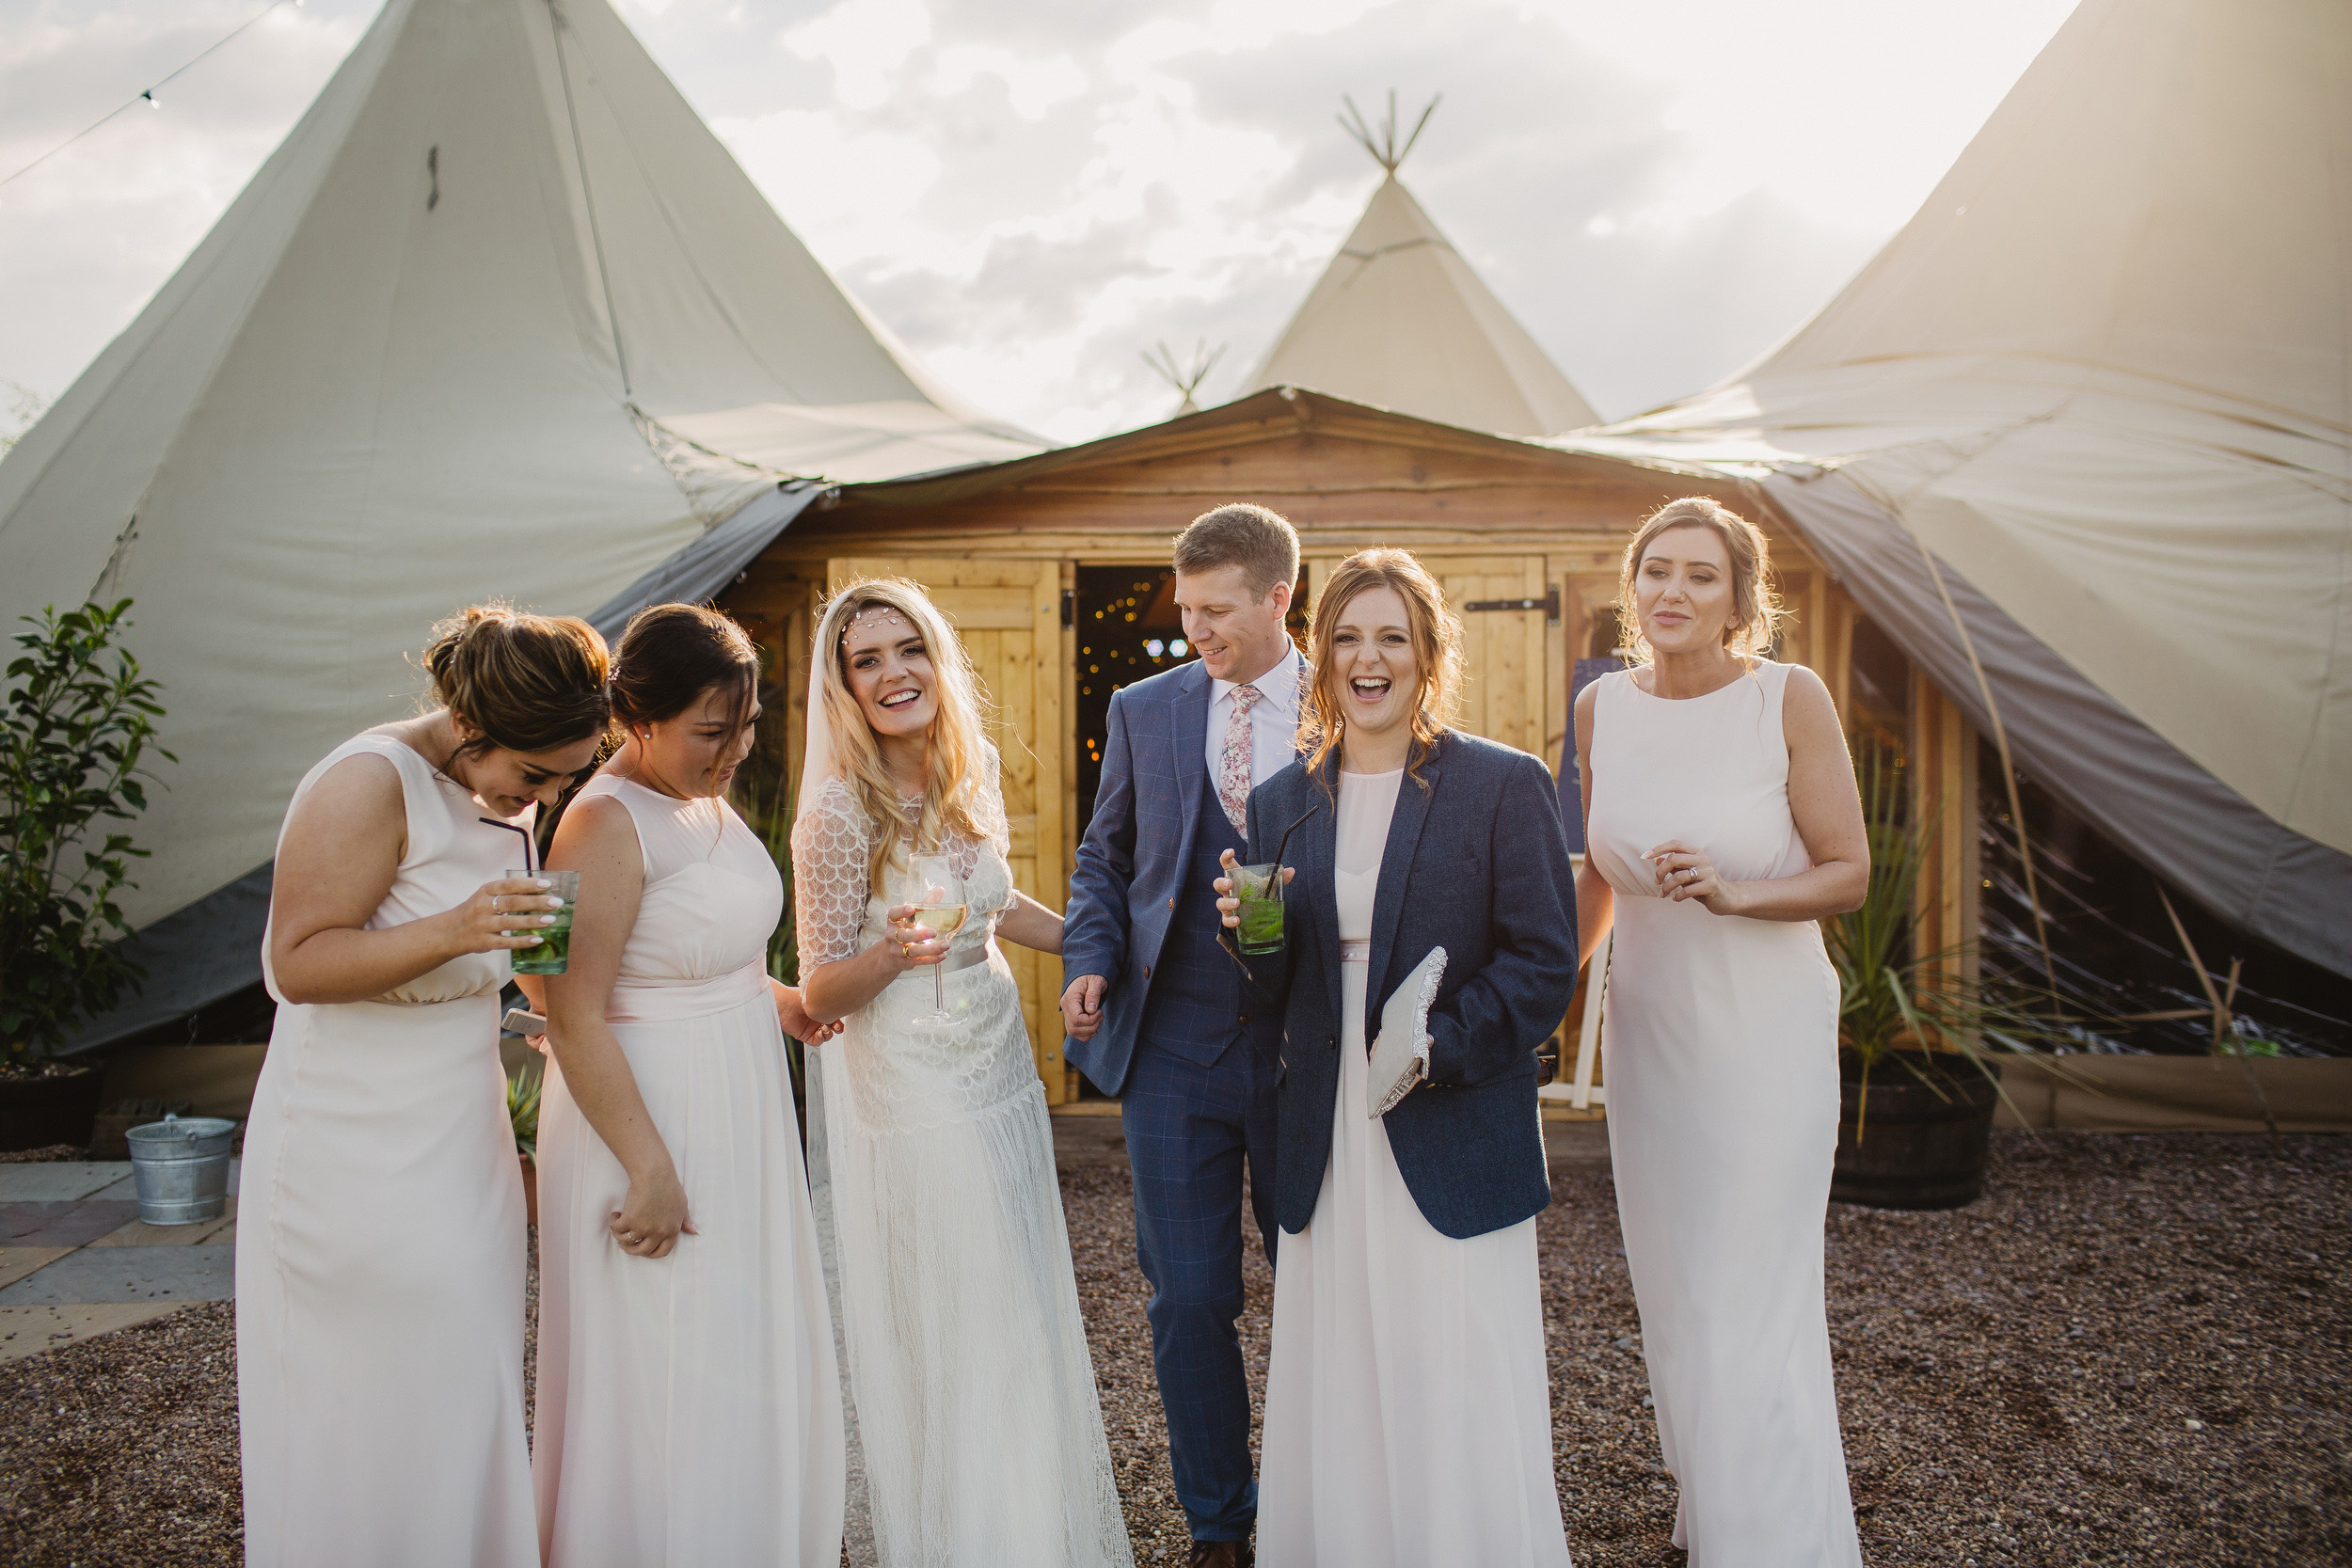 Gemma-Bohemian-Outdoor-Tipi-Wedding-Laid-Back-Relaxed-Family-Wedding-Kate-Beaumont-Astilbe-by-S6-Photography-Sheffield-45.jpg